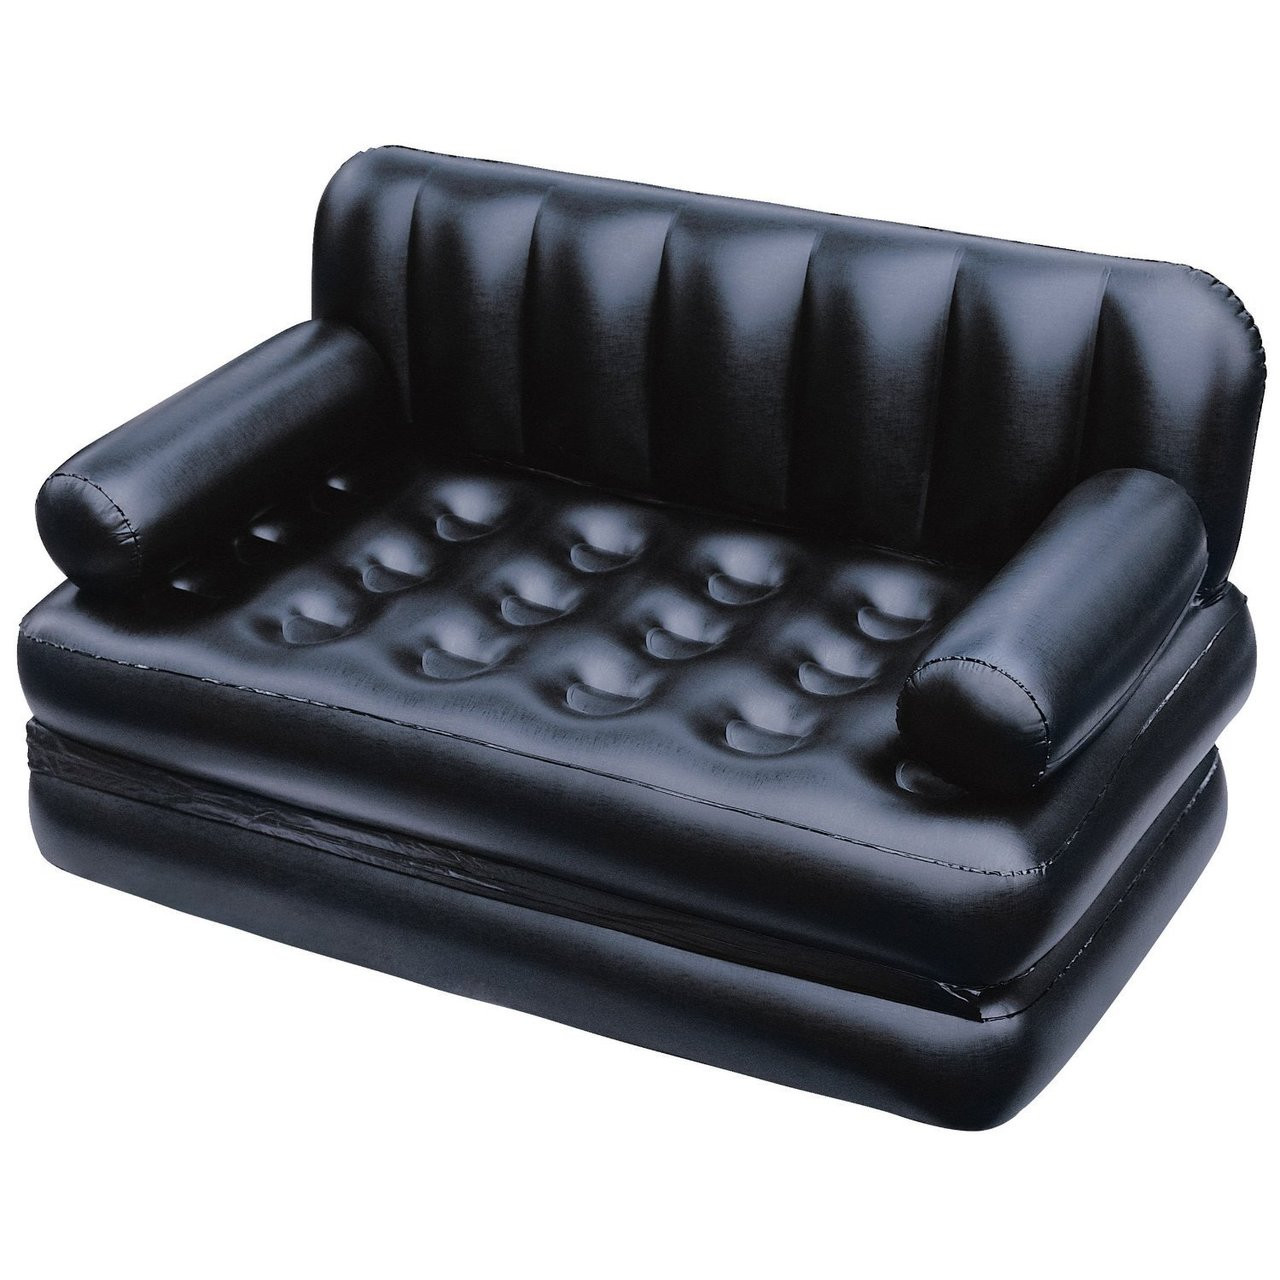 air mattress pull out sofa beds contemporary recliner sofas bed intex inflatable and queen